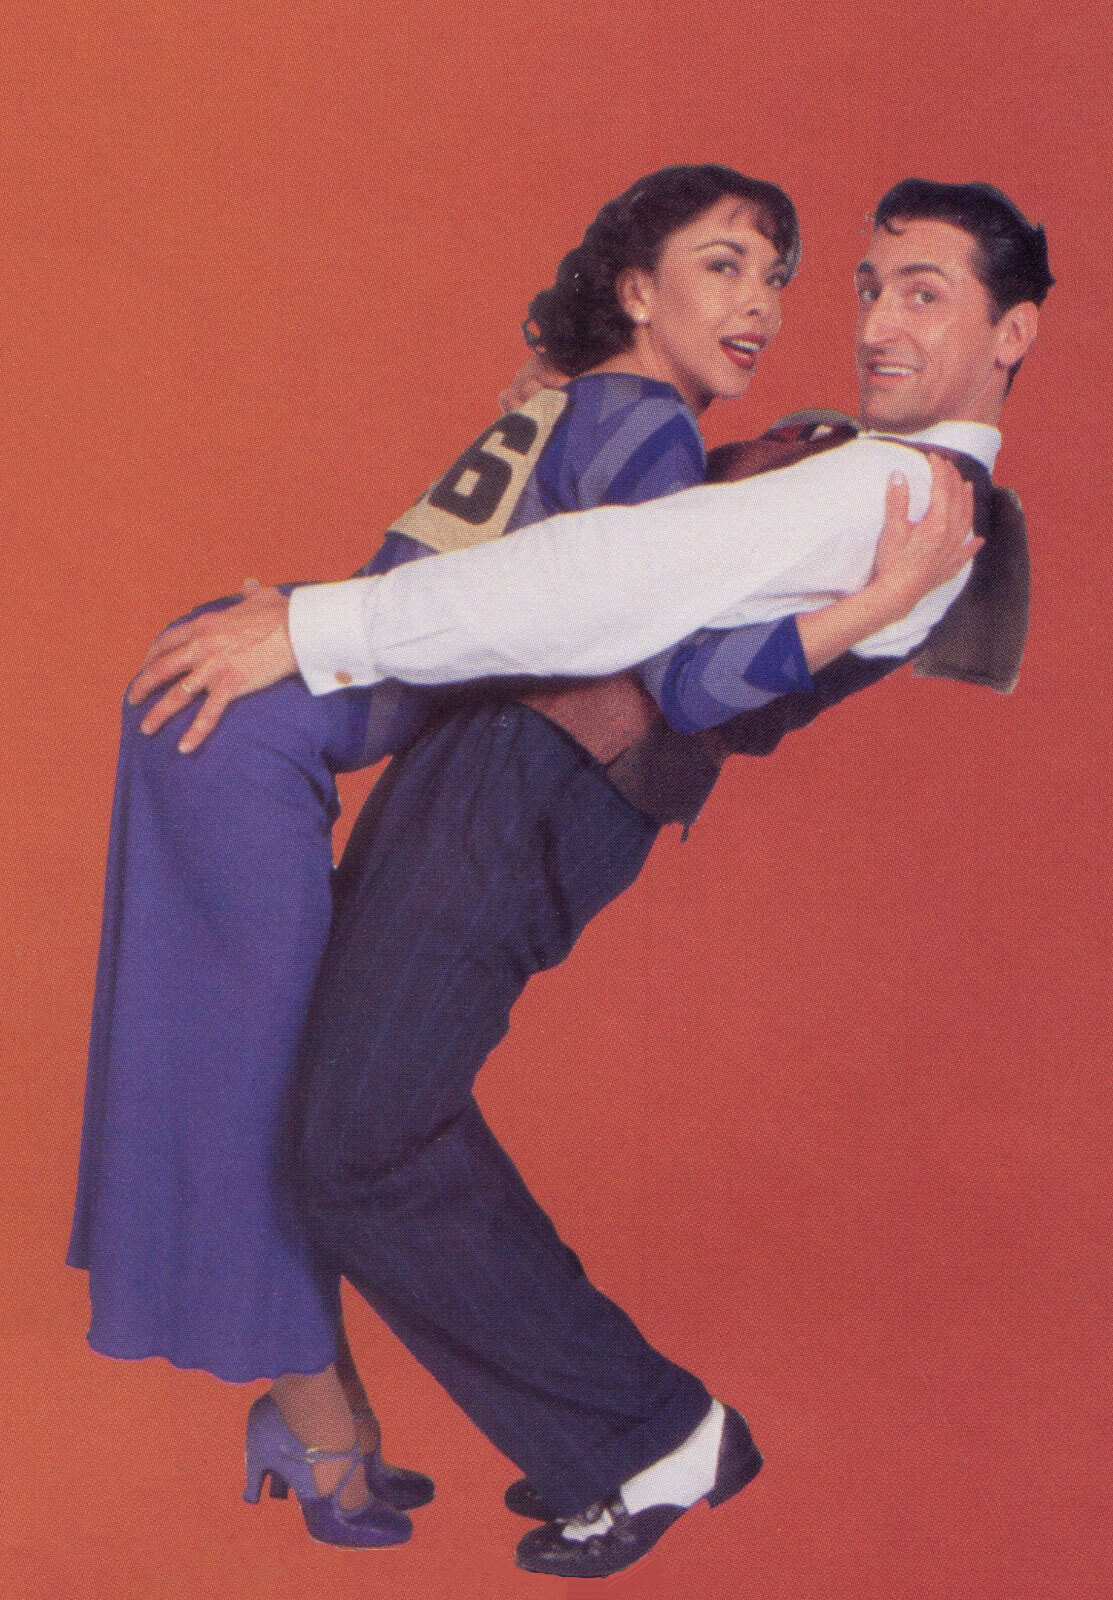 A Flying Dunlap/Couple #46 (JoAnn M. Hunter) in a matching purple outfit and Sonny (Gregory Mitchell) looking dapper in a suit, touching the former's backside, during a photoshoot.